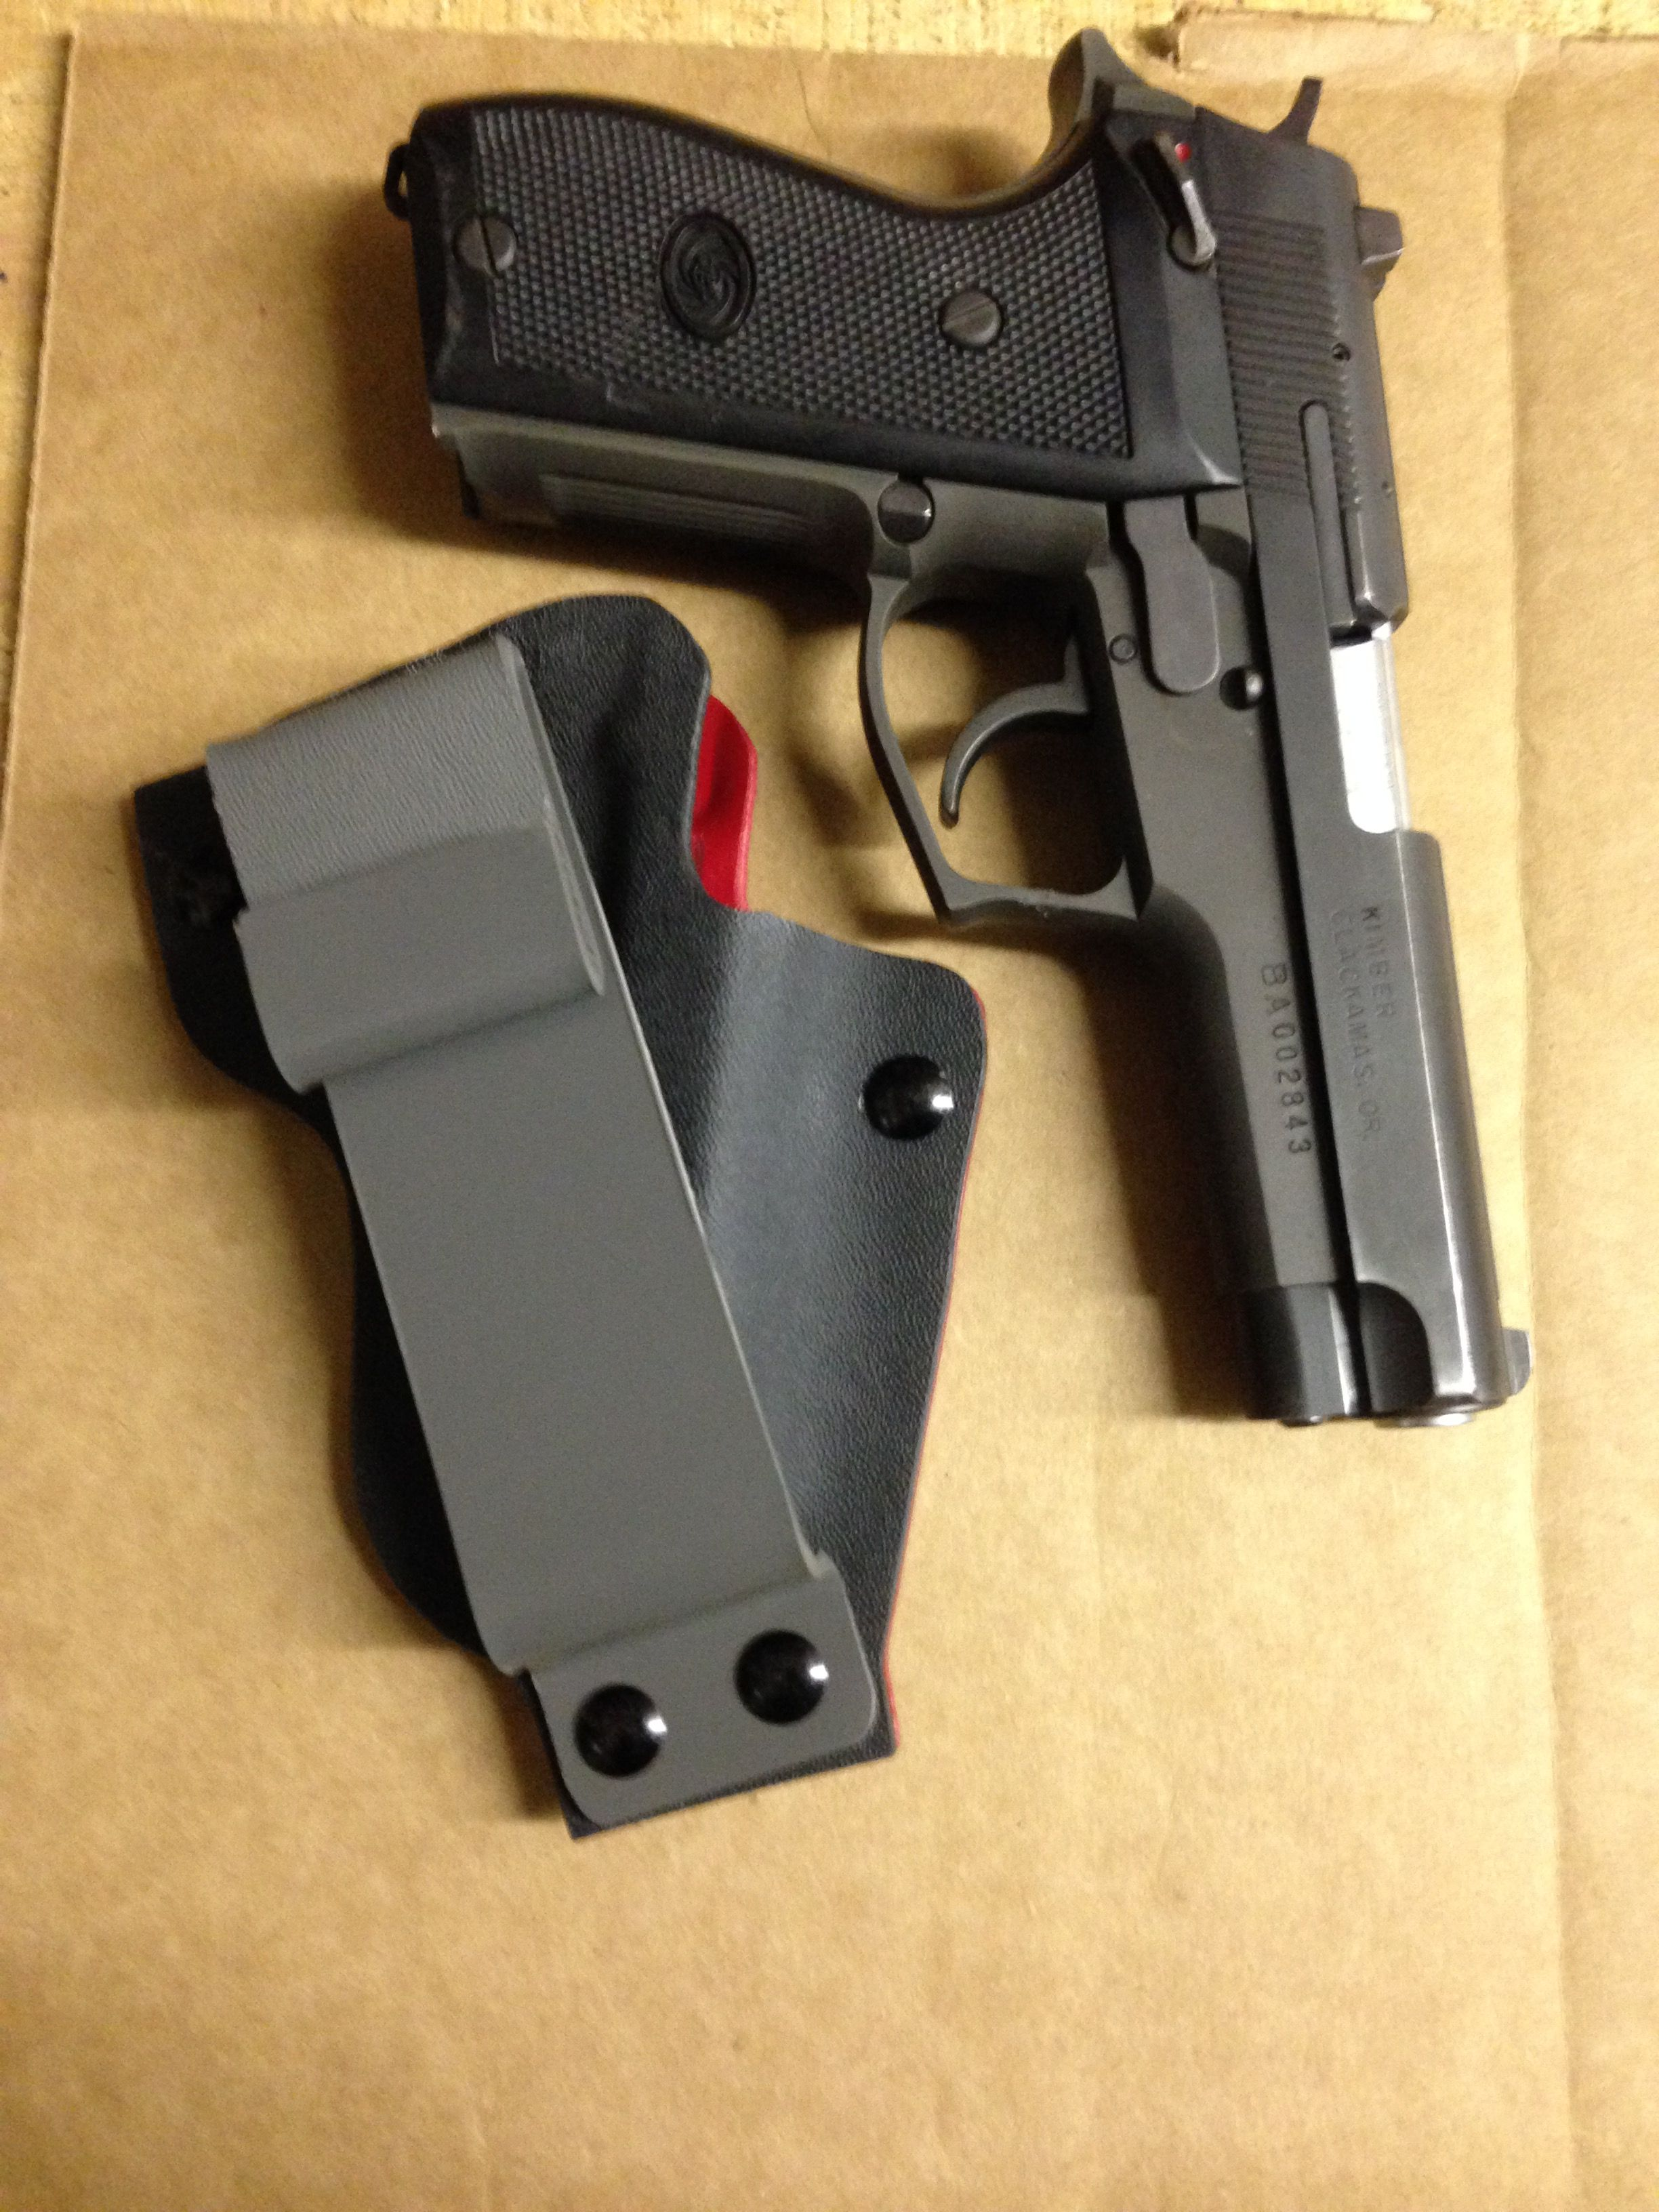 small resolution of daewoo dp 51 9mm ambidextrous iwb kydex holster i made todayloading that magazine is a